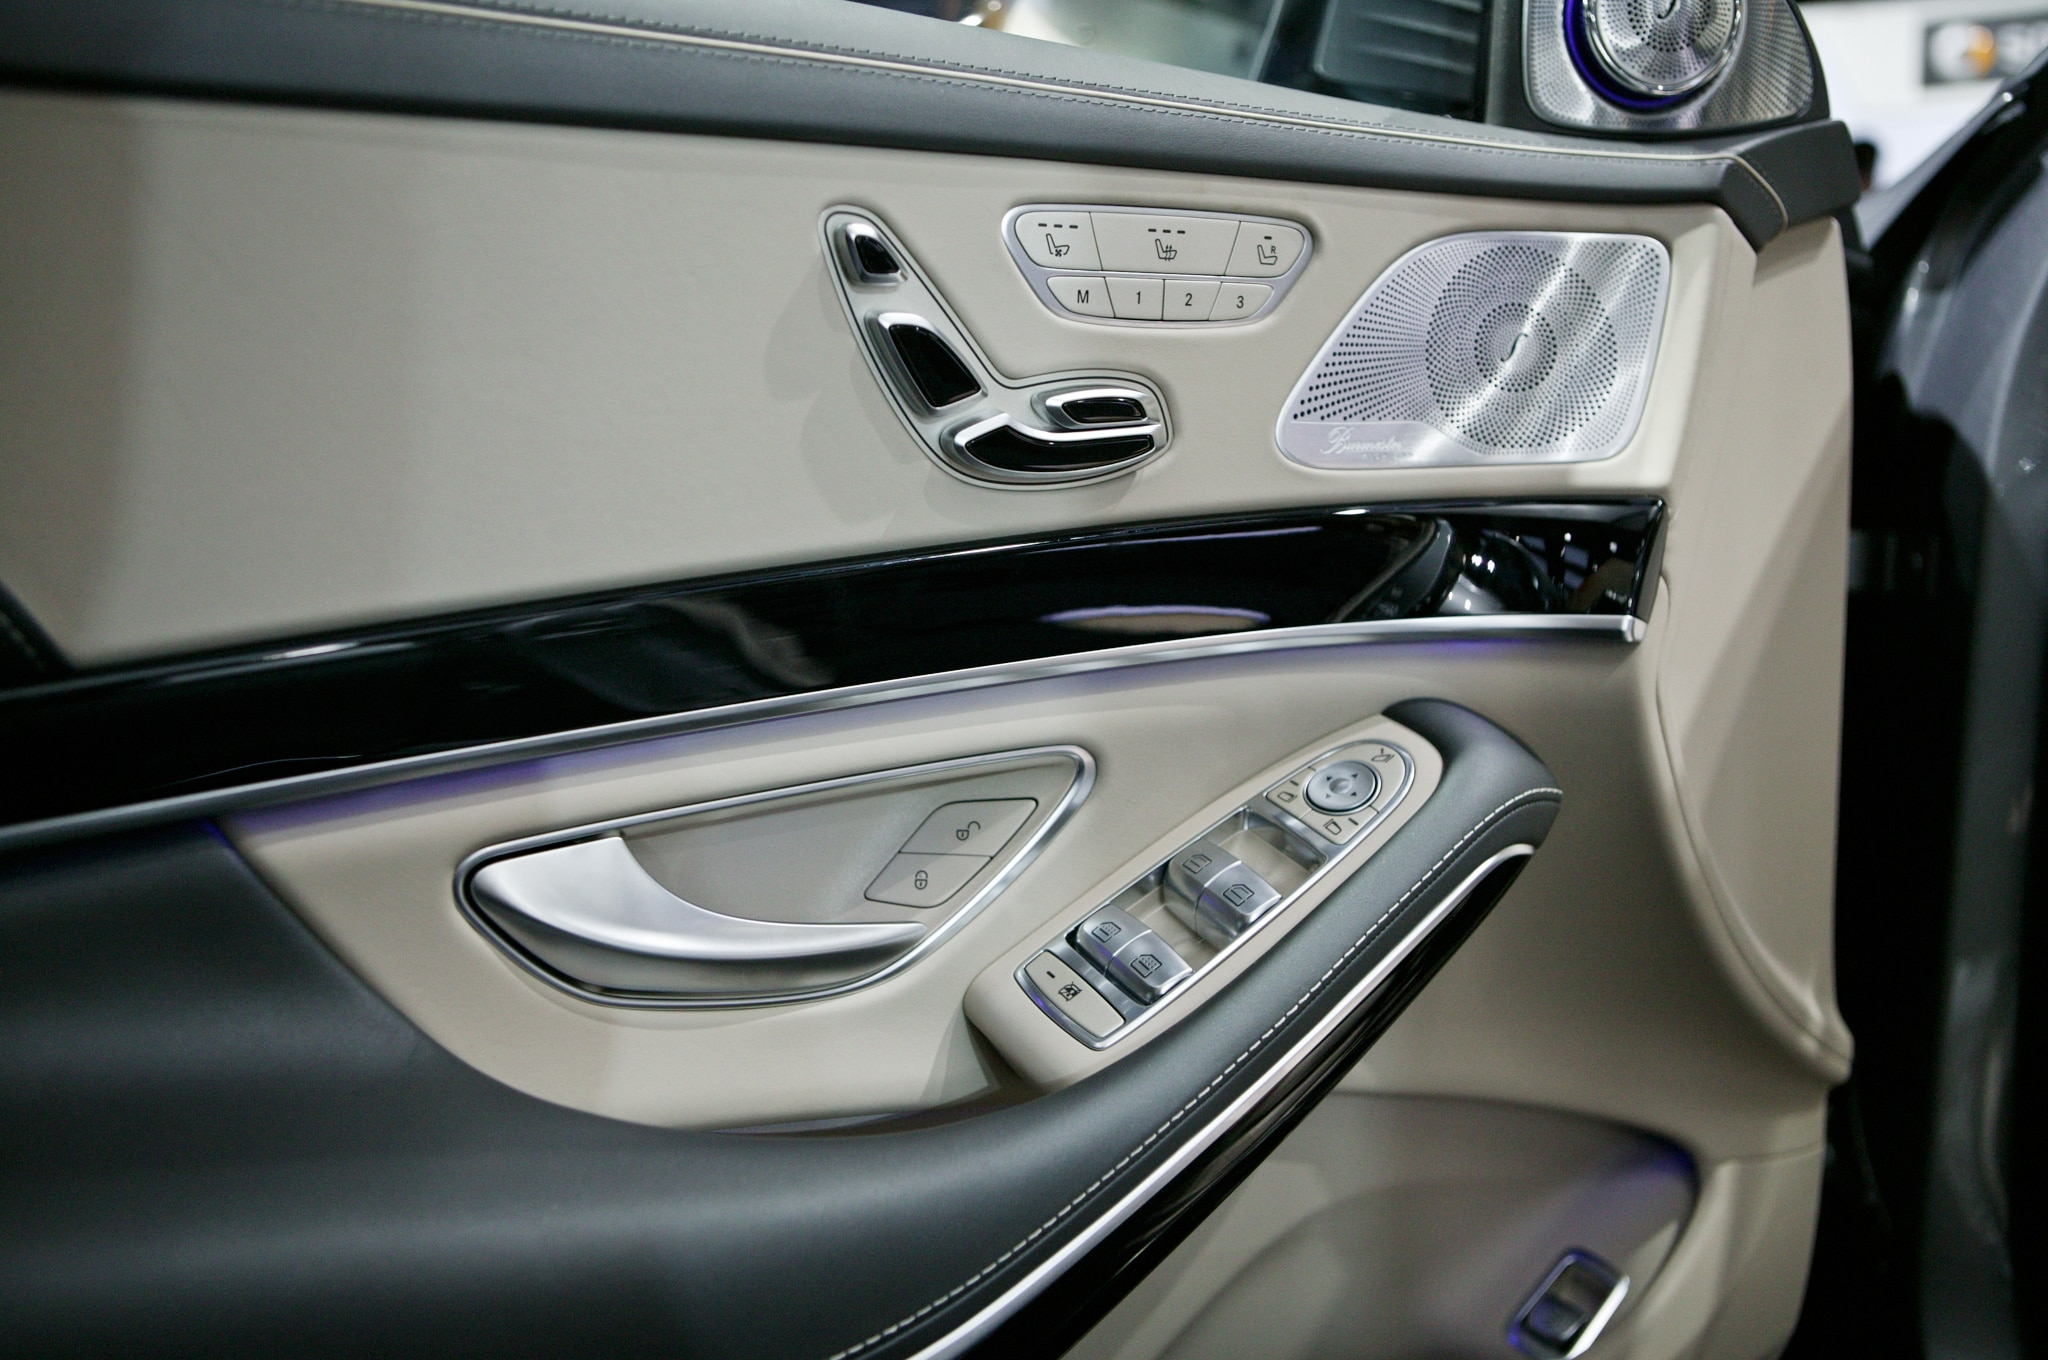 https://st.automobilemag.com/uploads/sites/11/2014/01/2015-Mercedes-Benz-S600-interior-door-panel-02.jpg